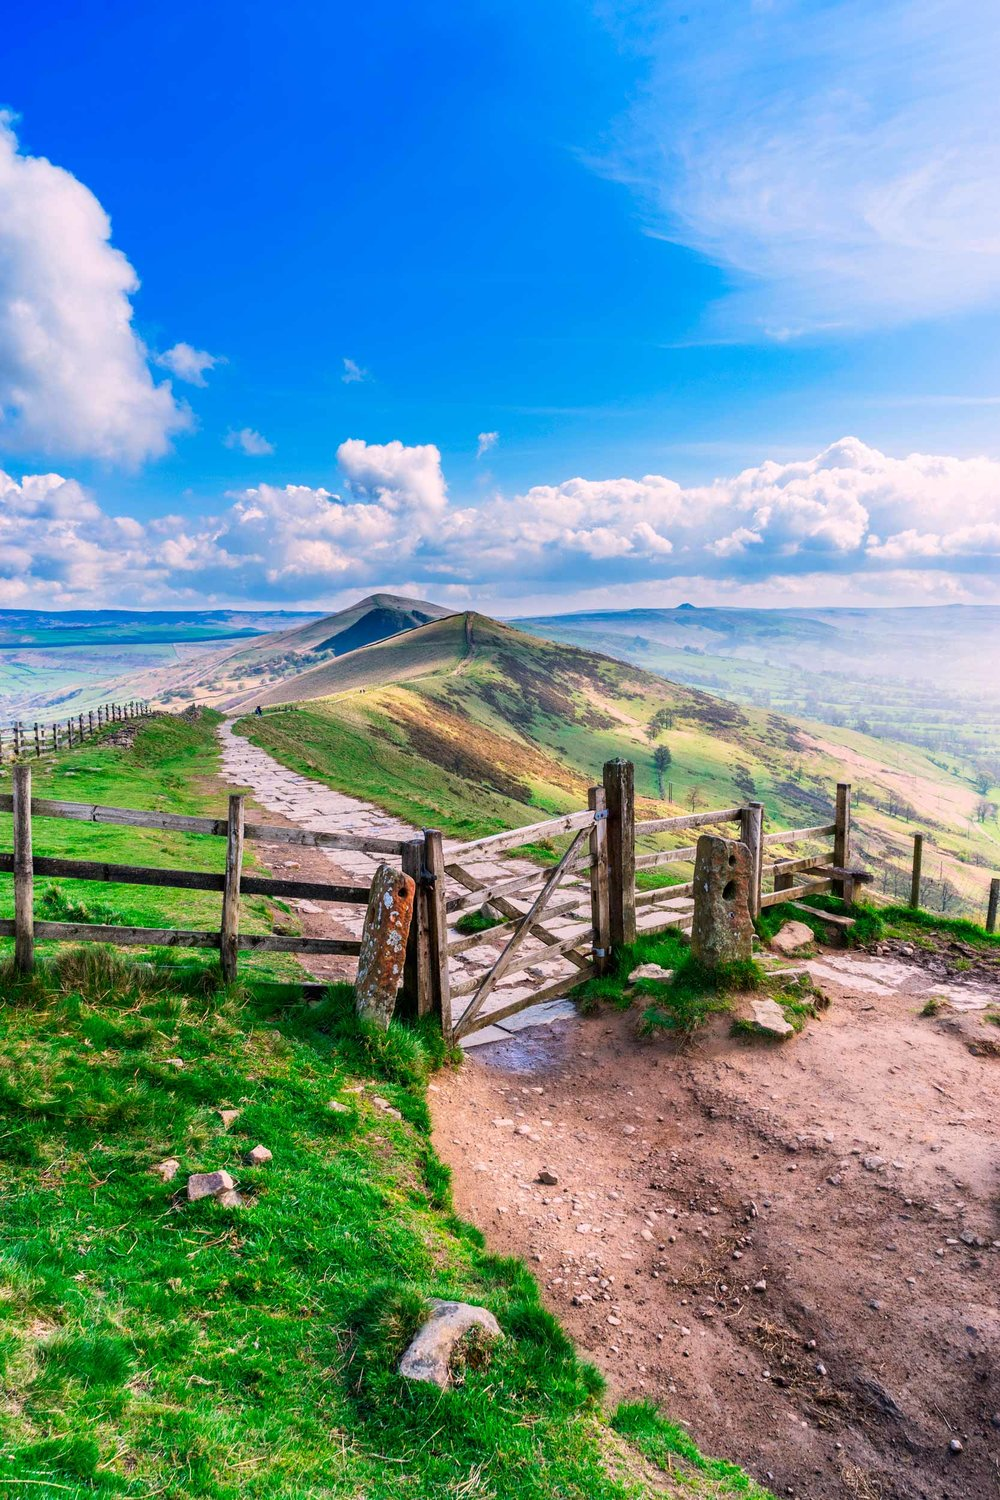 Mam Tor, Peak District - one of Britain's favourite views  (Gordon Bell/Shutterstock)